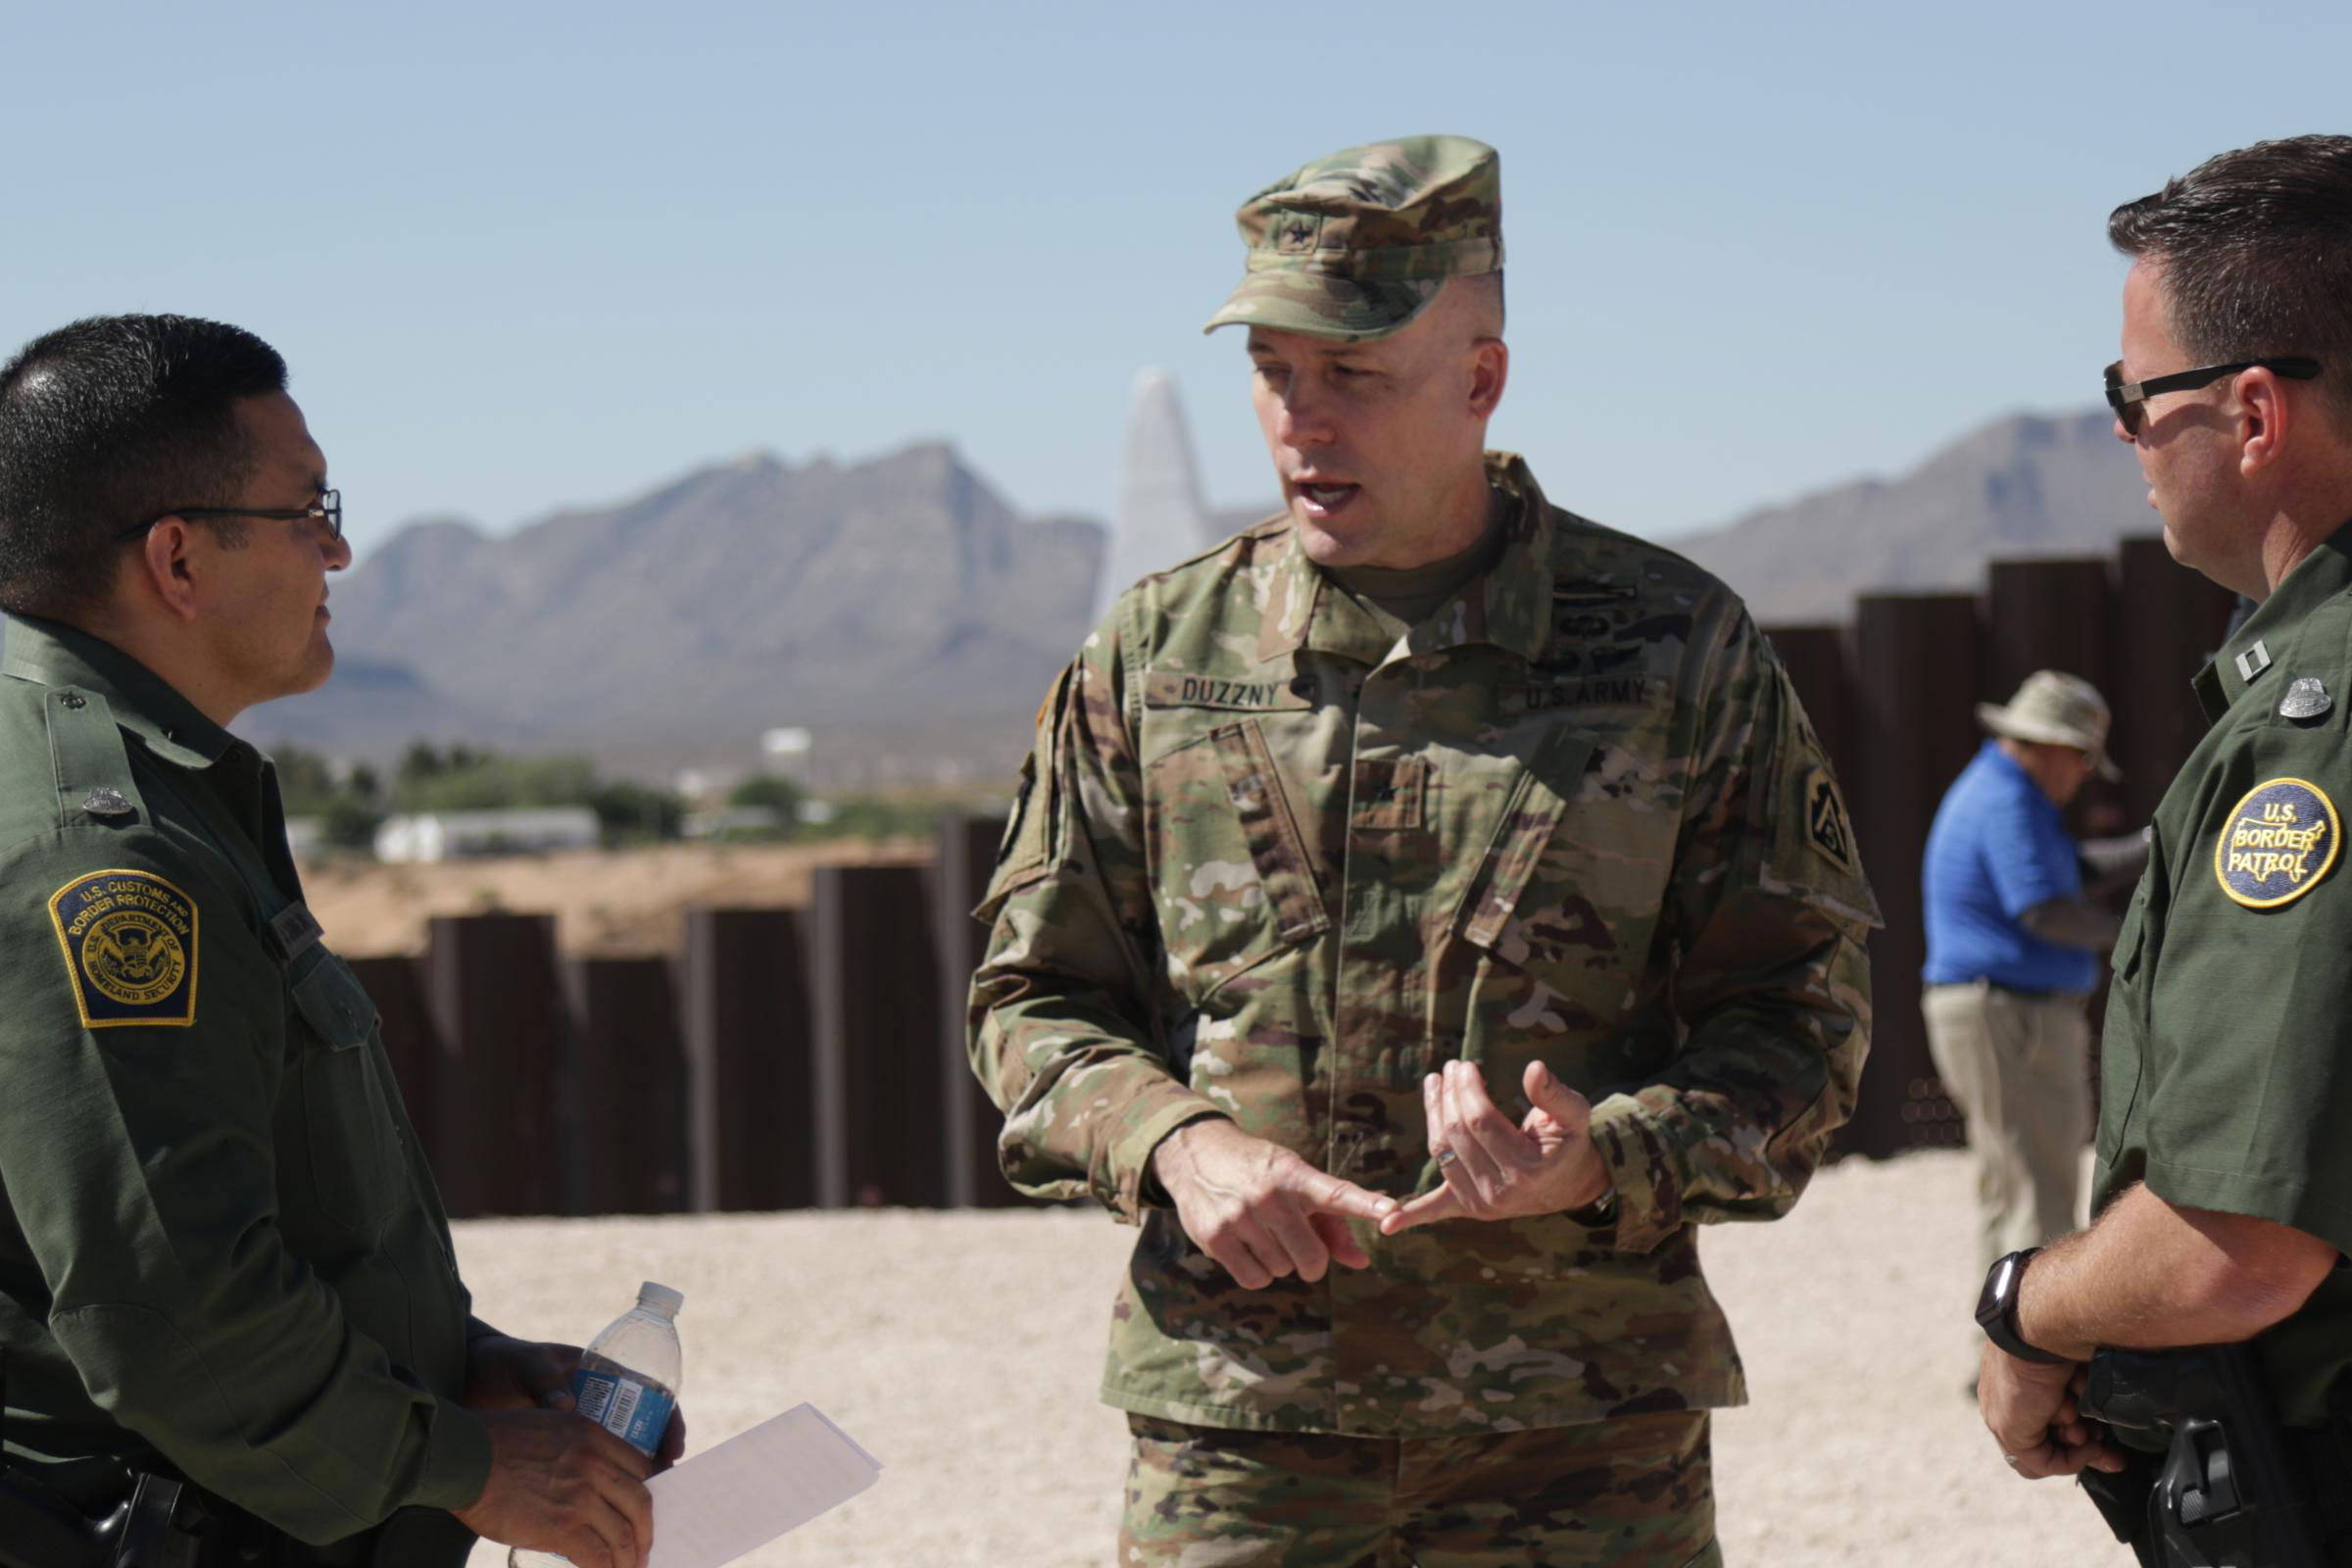 <p>Army Brig. Gen. Walter Duzzny speaks to border patrol agents in Sunland Park, N.M. during a June media event at the U.S. Mexico border.</p>